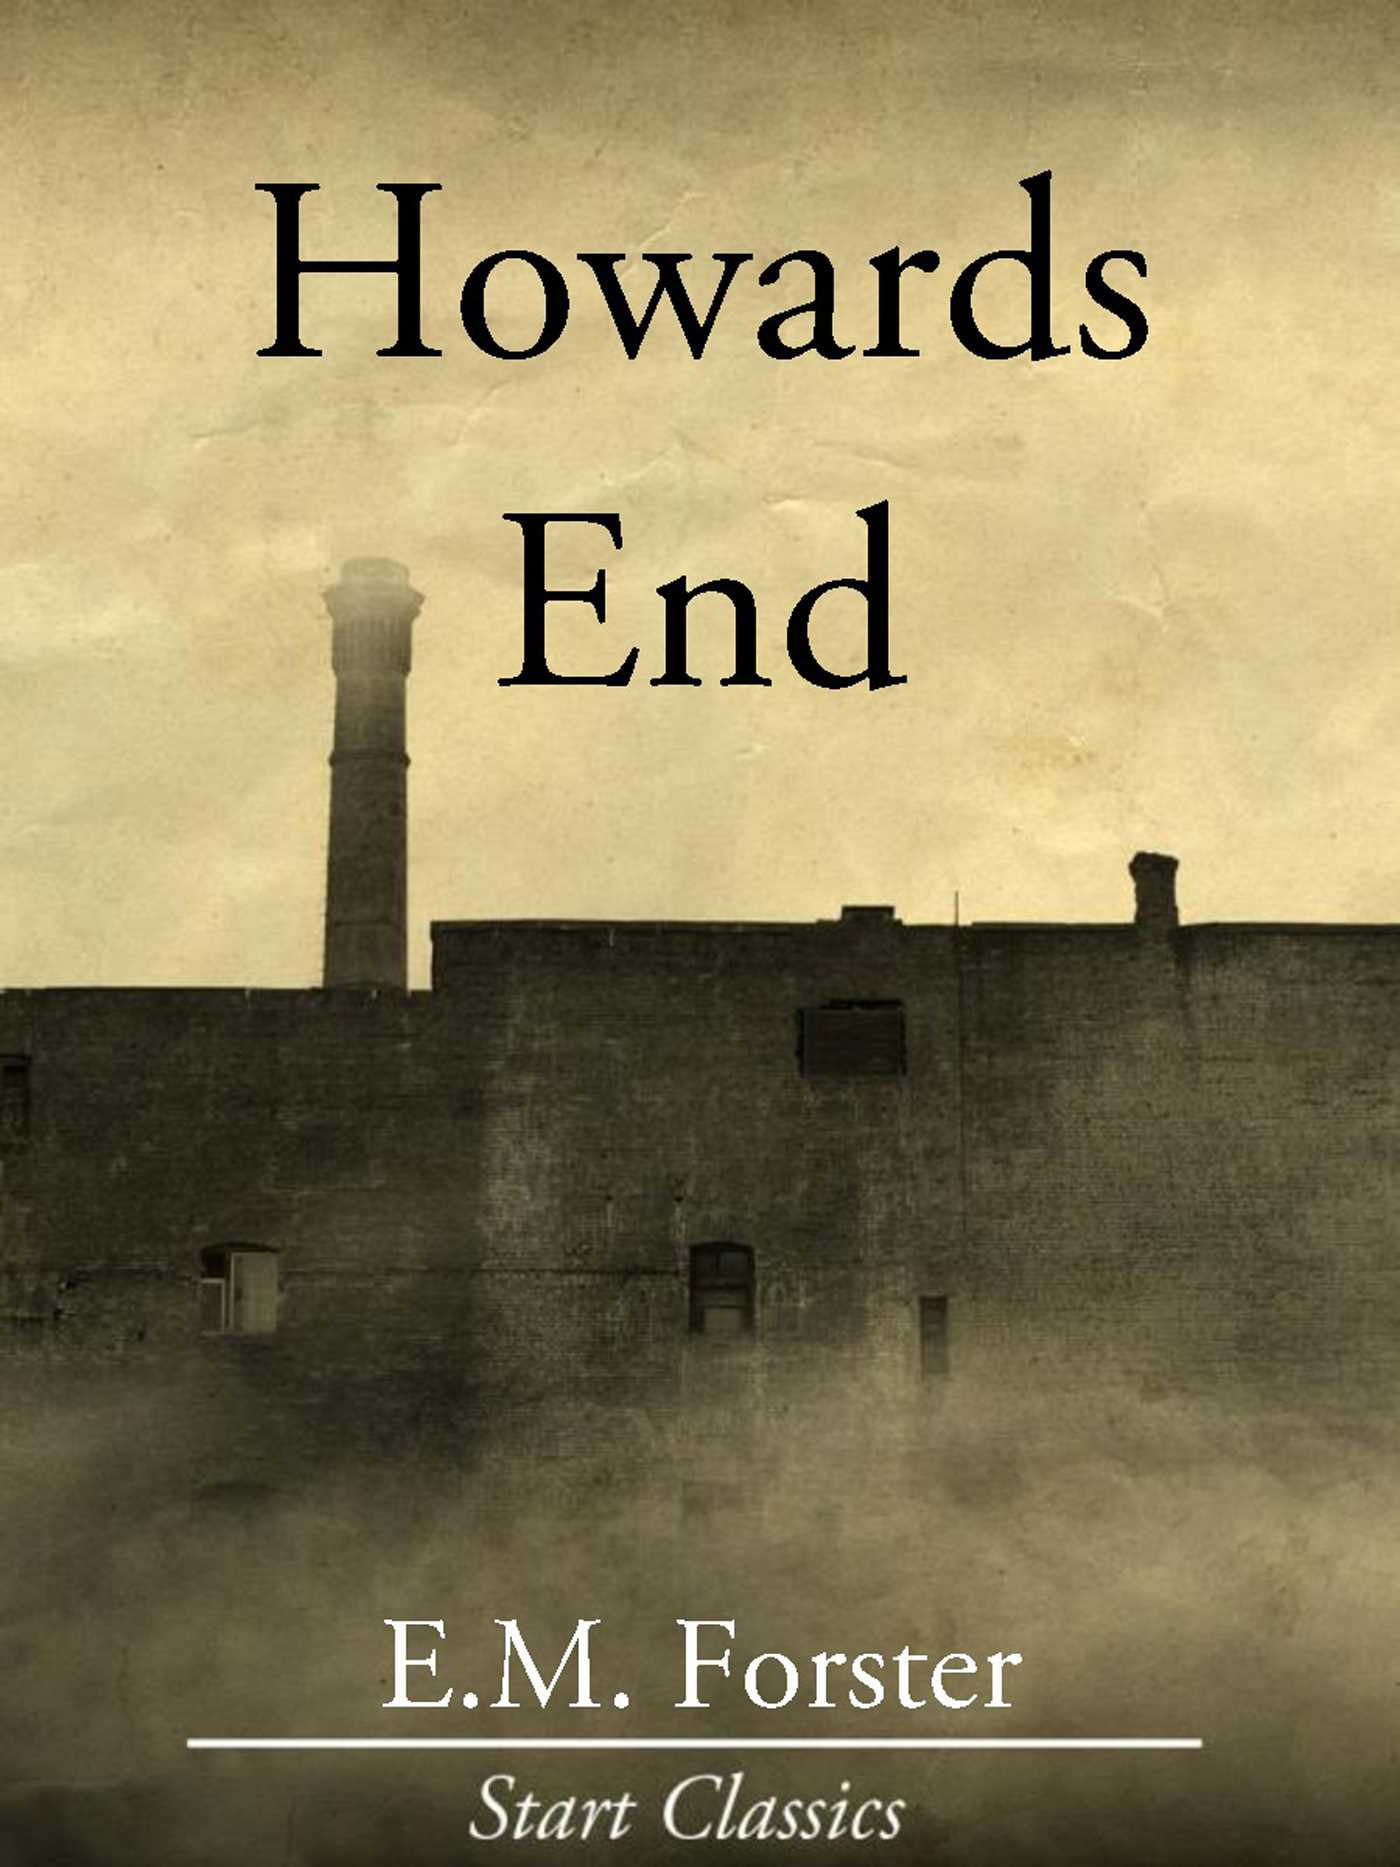 Howards End- Book Review Essay